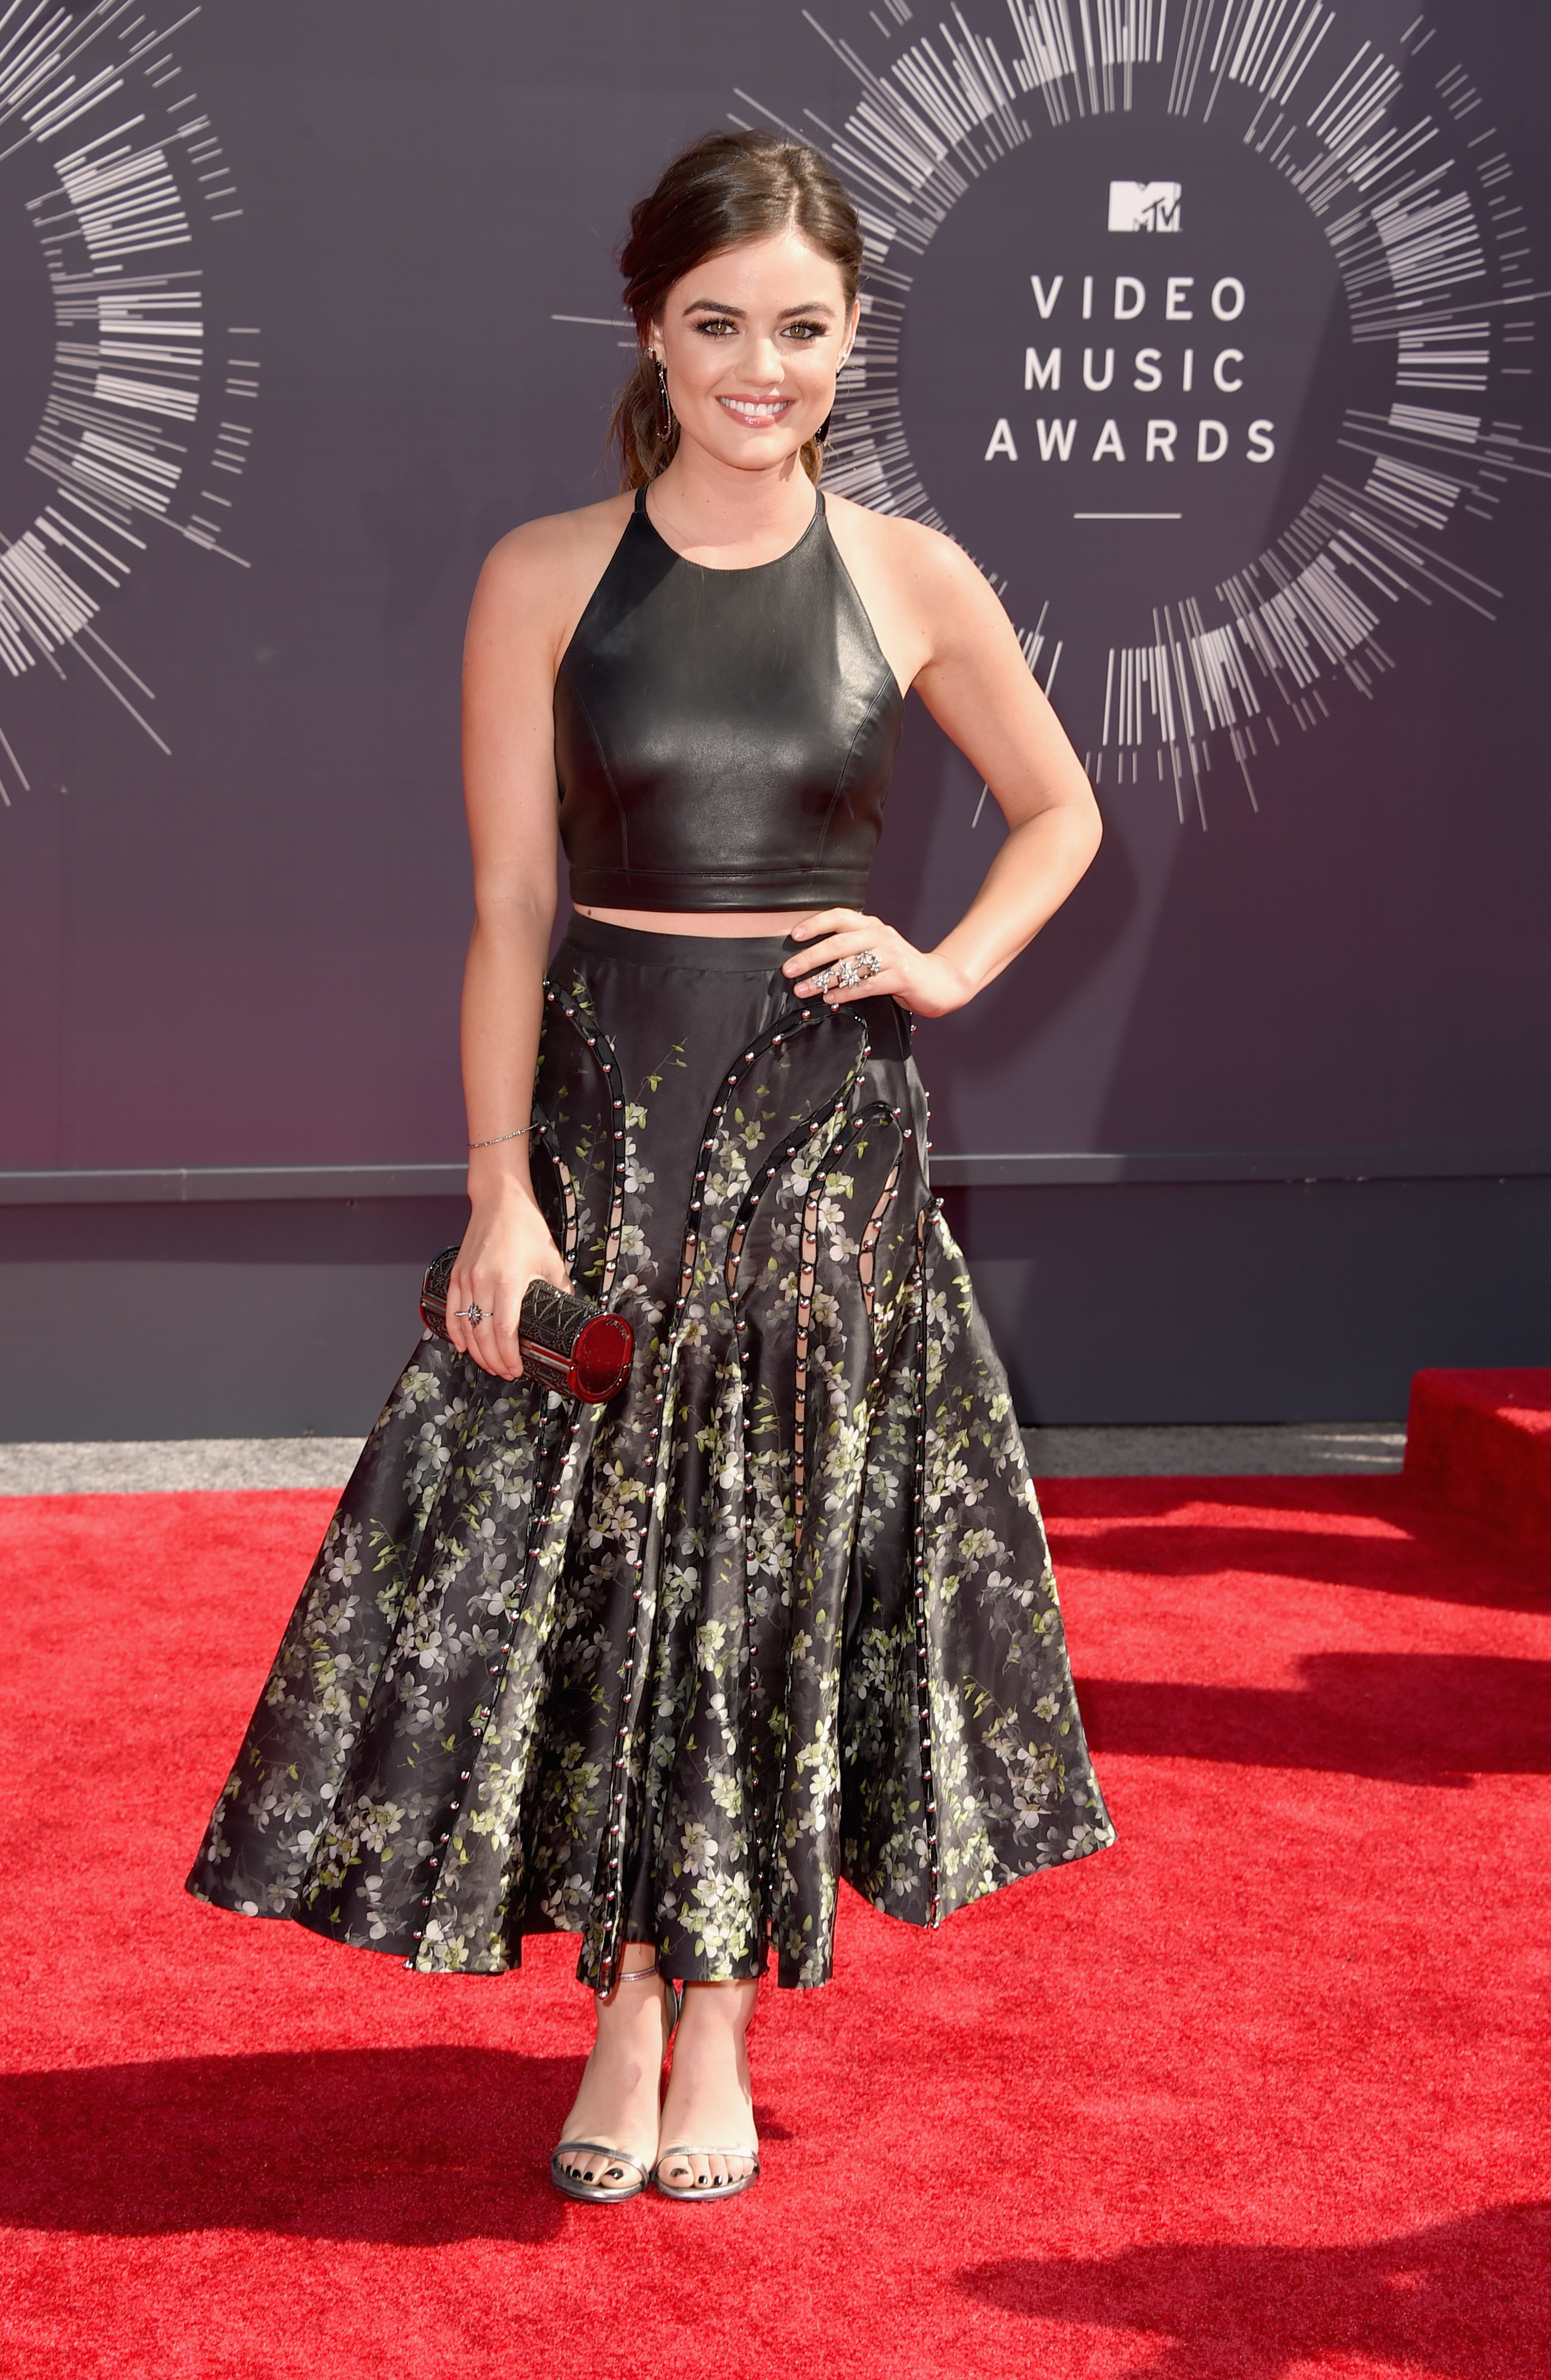 Lucy Hale attends the 2014 MTV Video Music Awards at The Forum on August 24, 2014 in Inglewood, California.